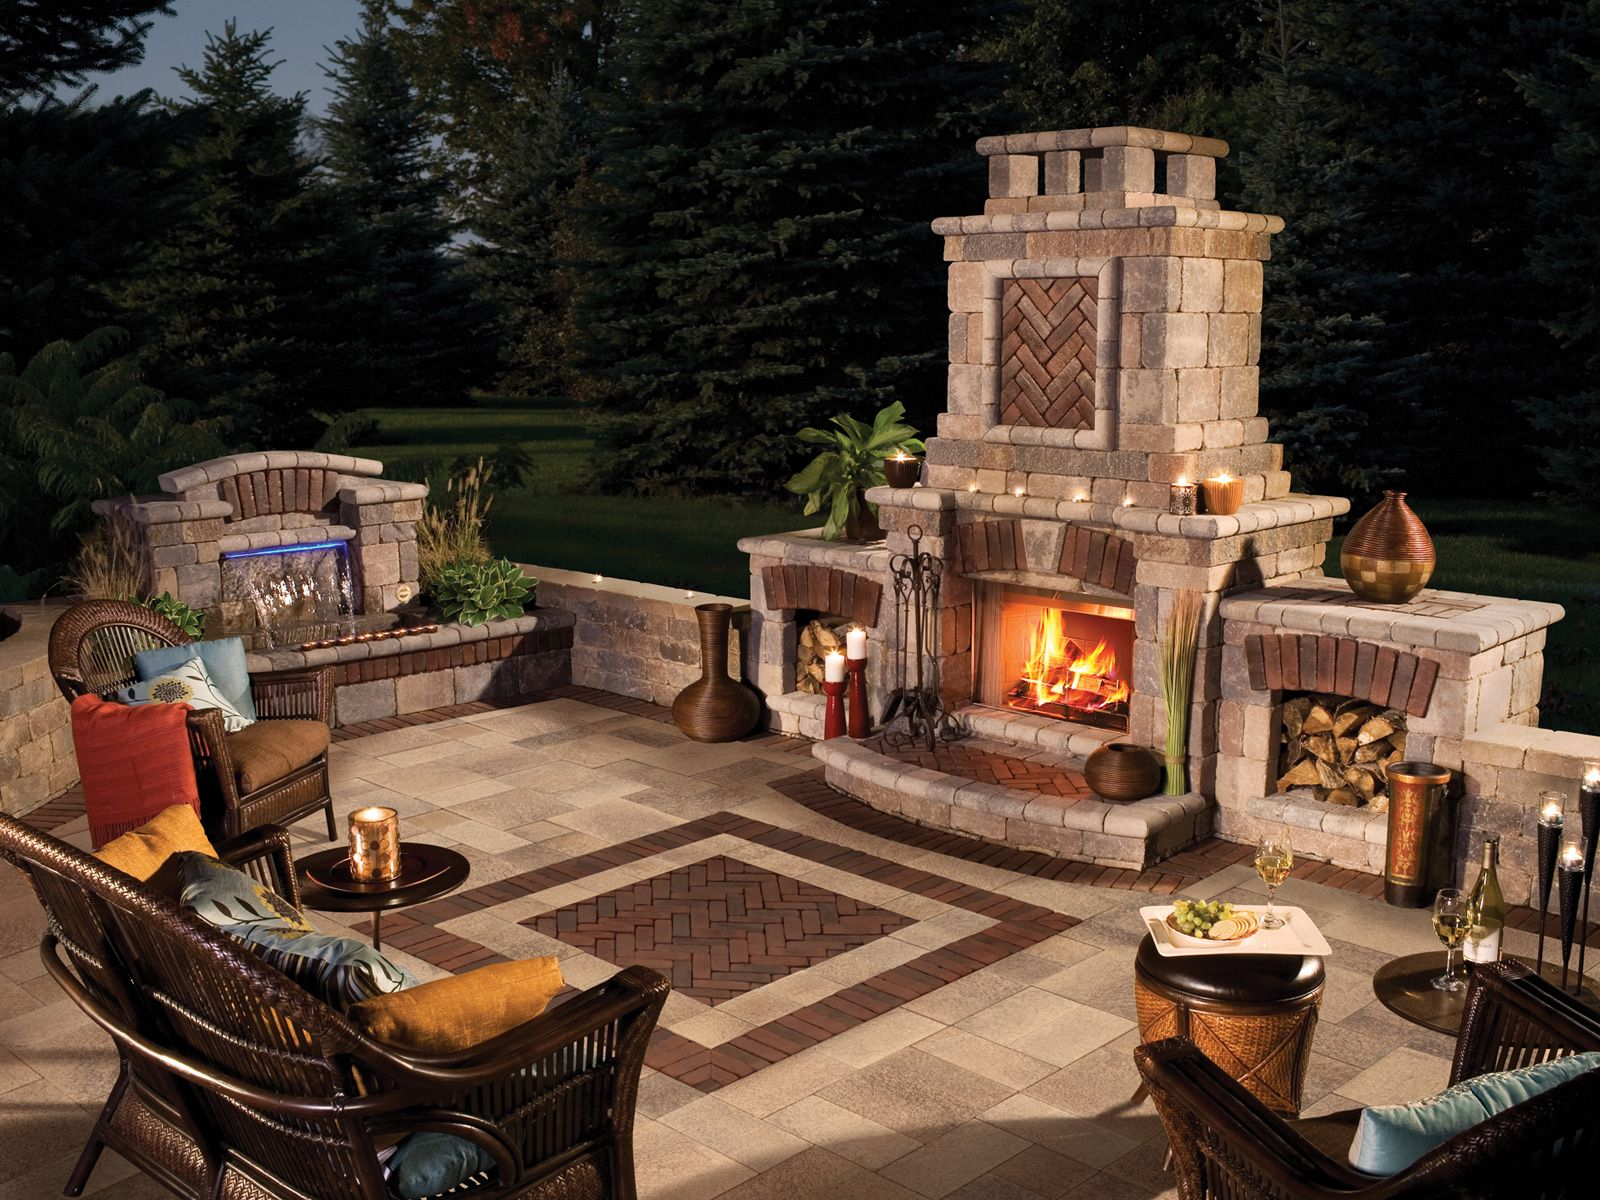 Delightful 22 Patio With Fireplace Design On Patio Ideas With